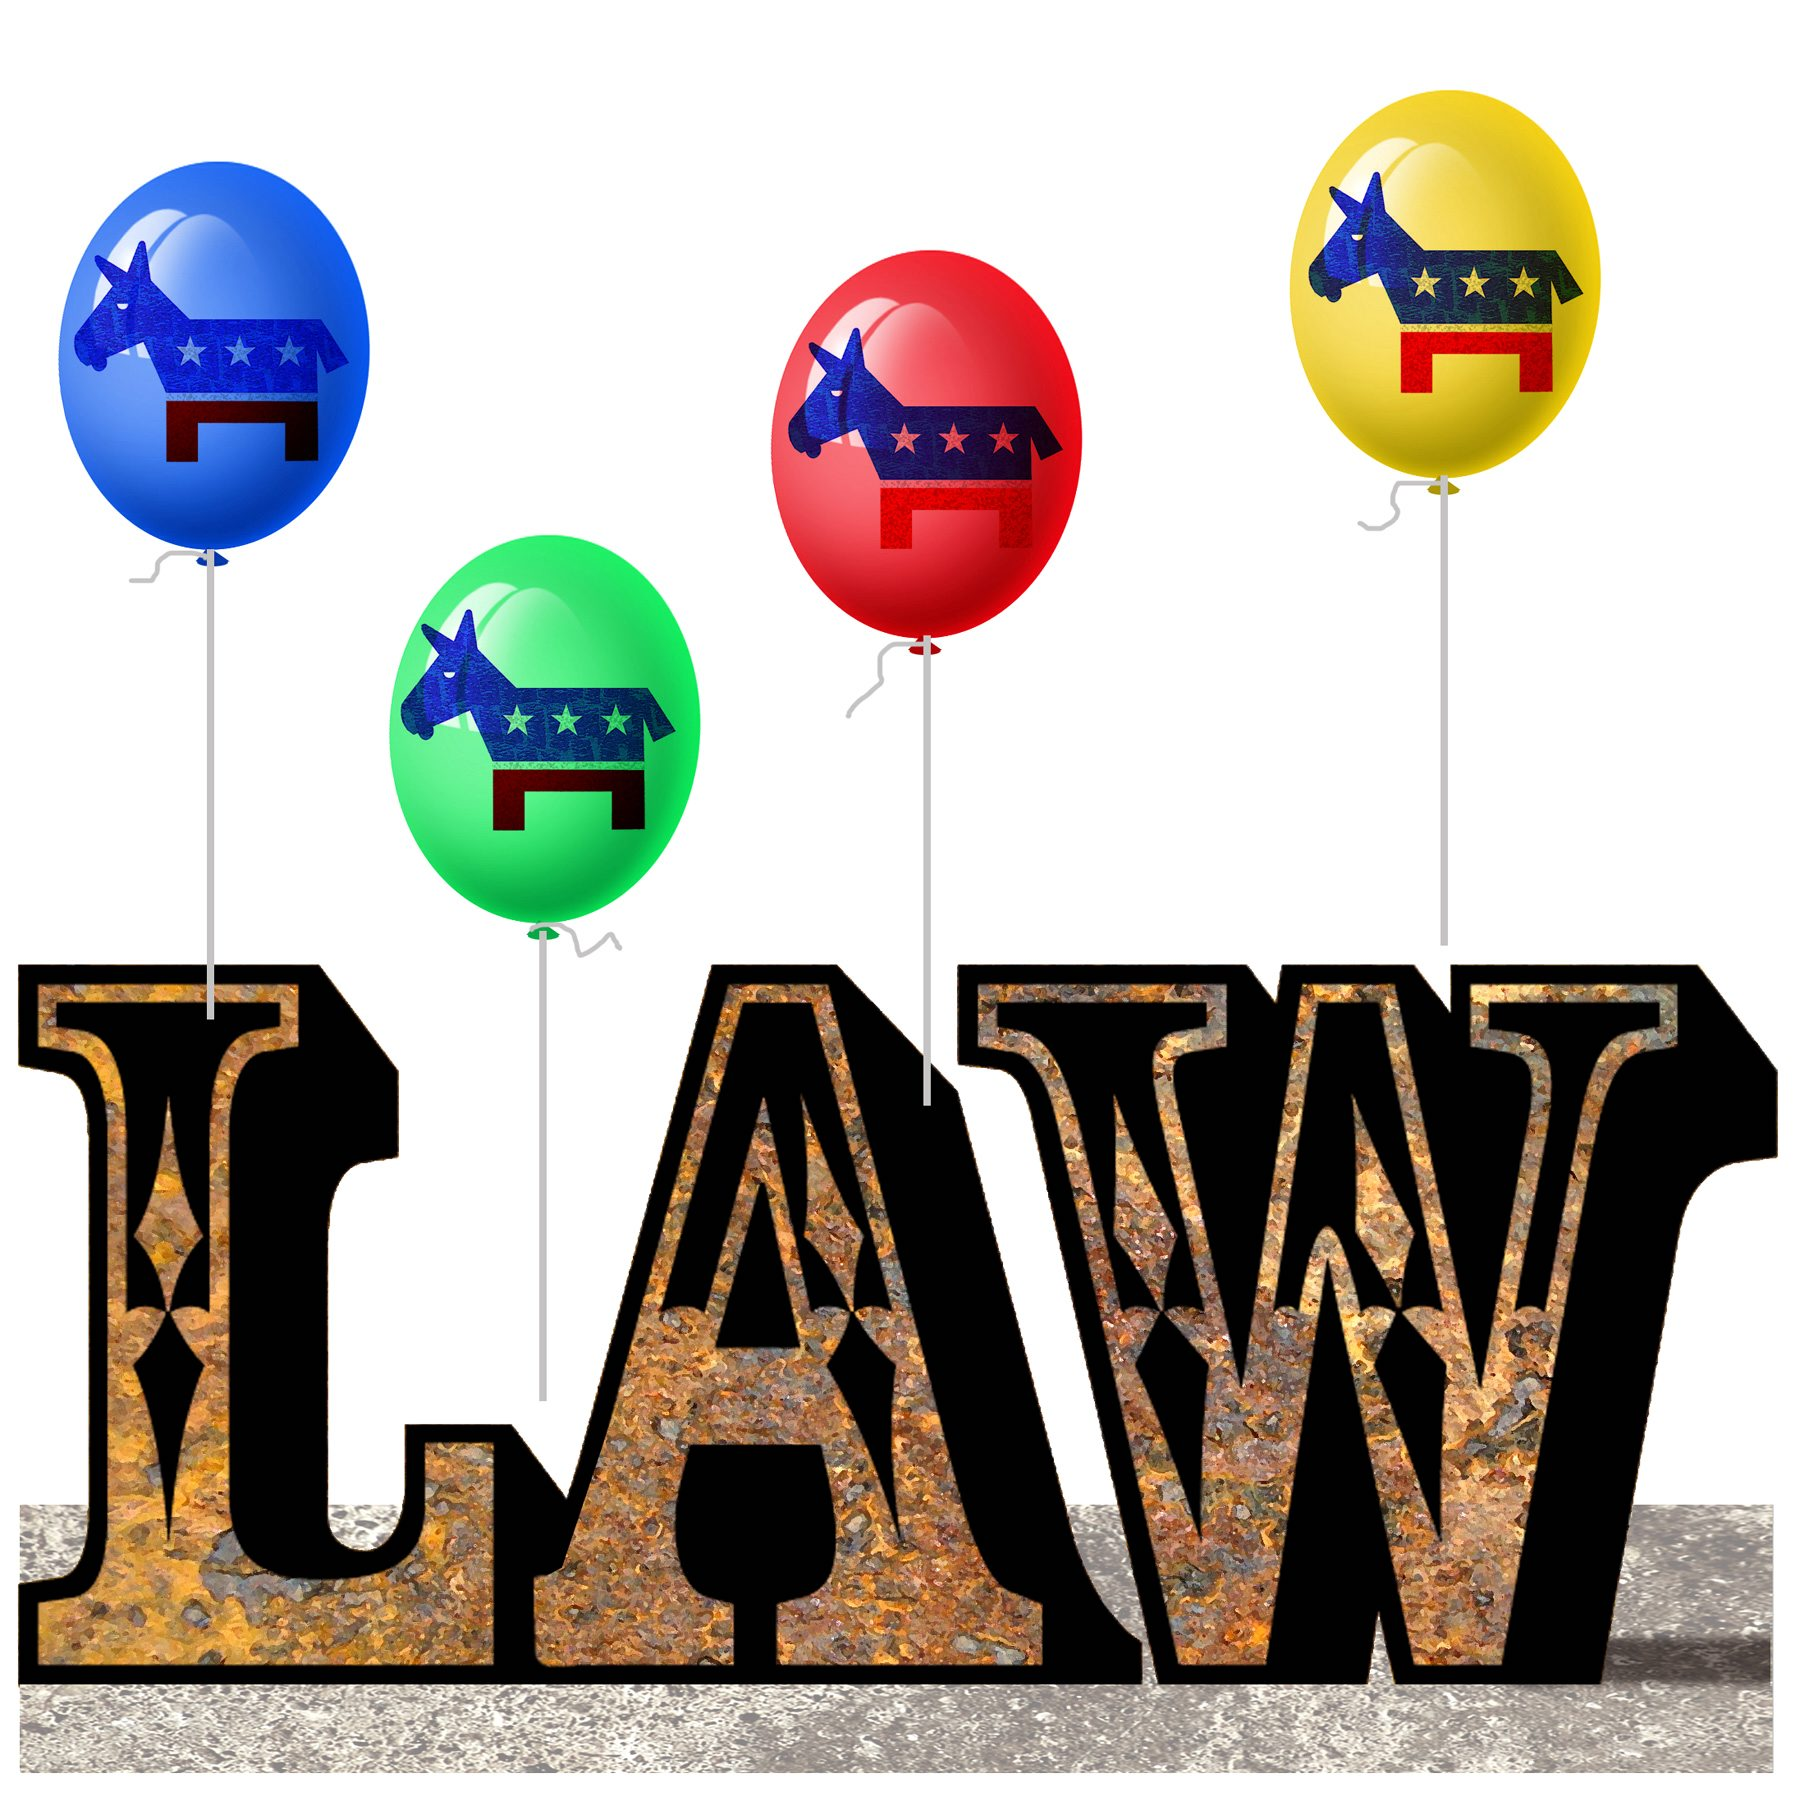 No one is above the law - unless you're a Democrat